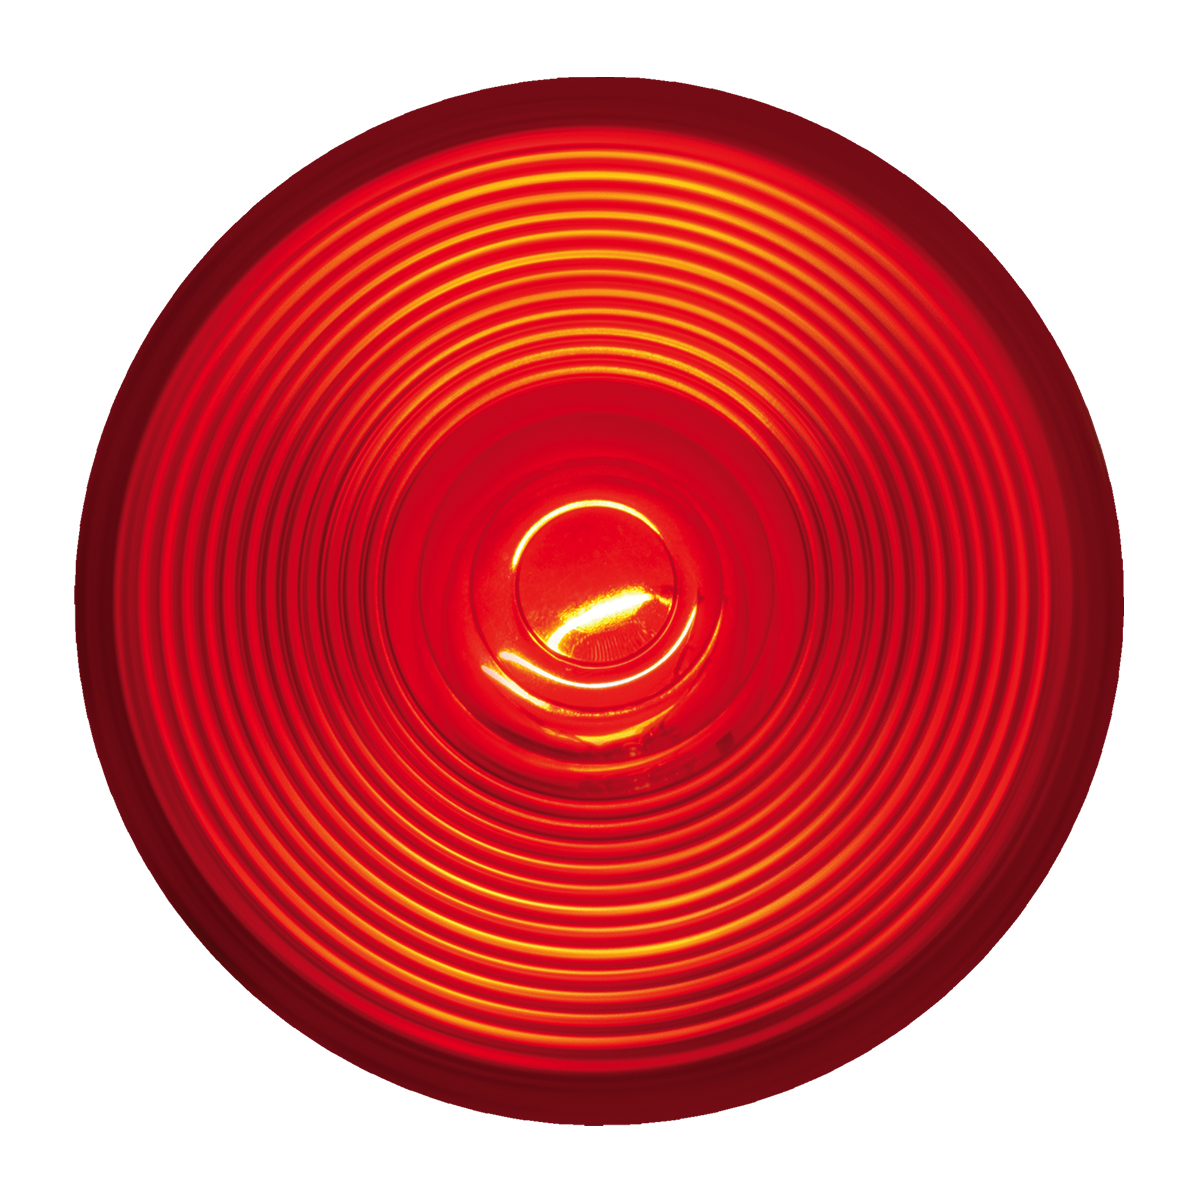 "#80471 4"" Round Incandescent Flat Light - Red/Red"